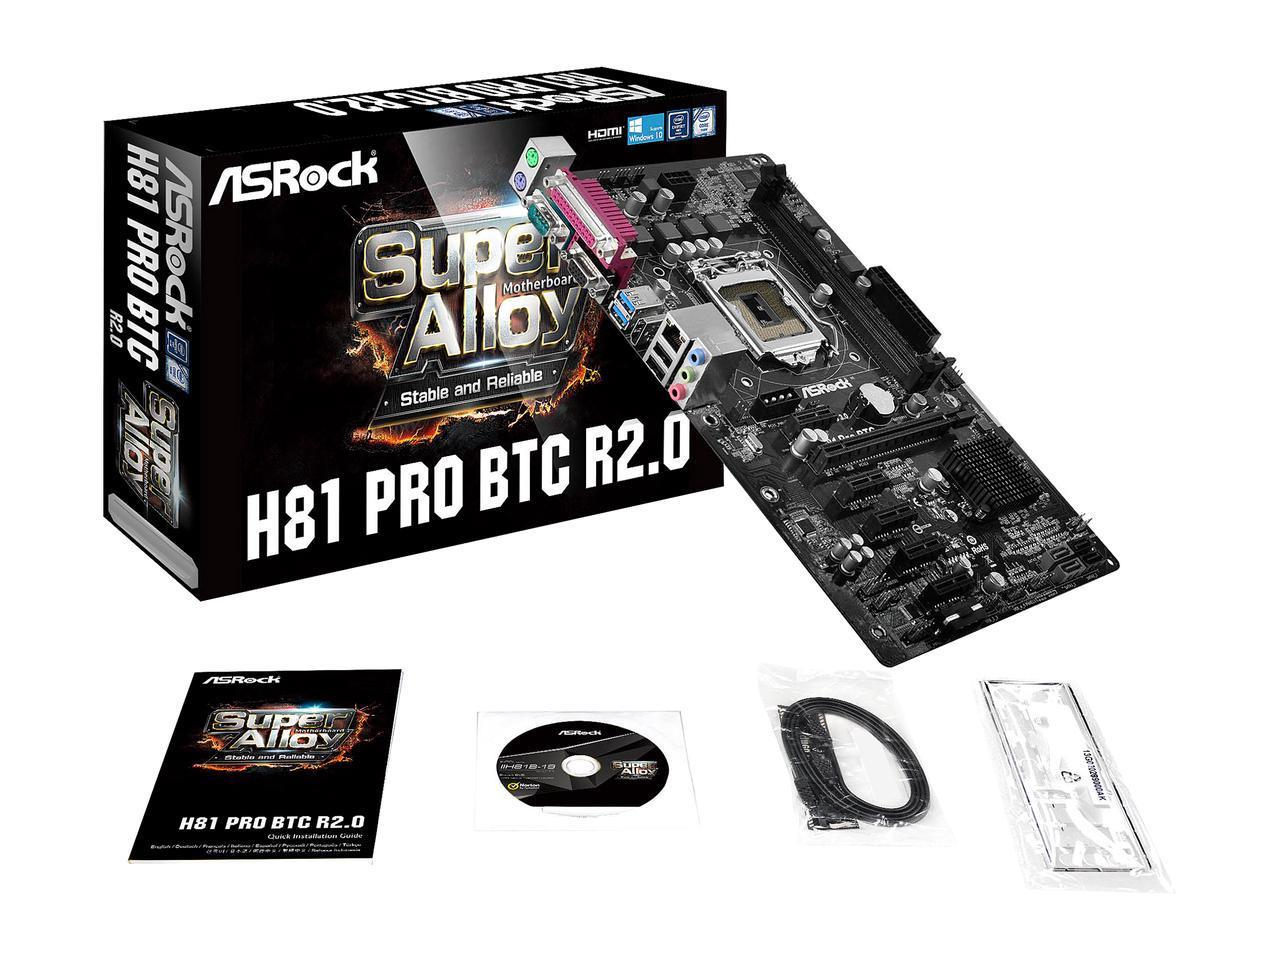 ASRock FM2A58M+ BTC XFast LAN Drivers for Windows XP